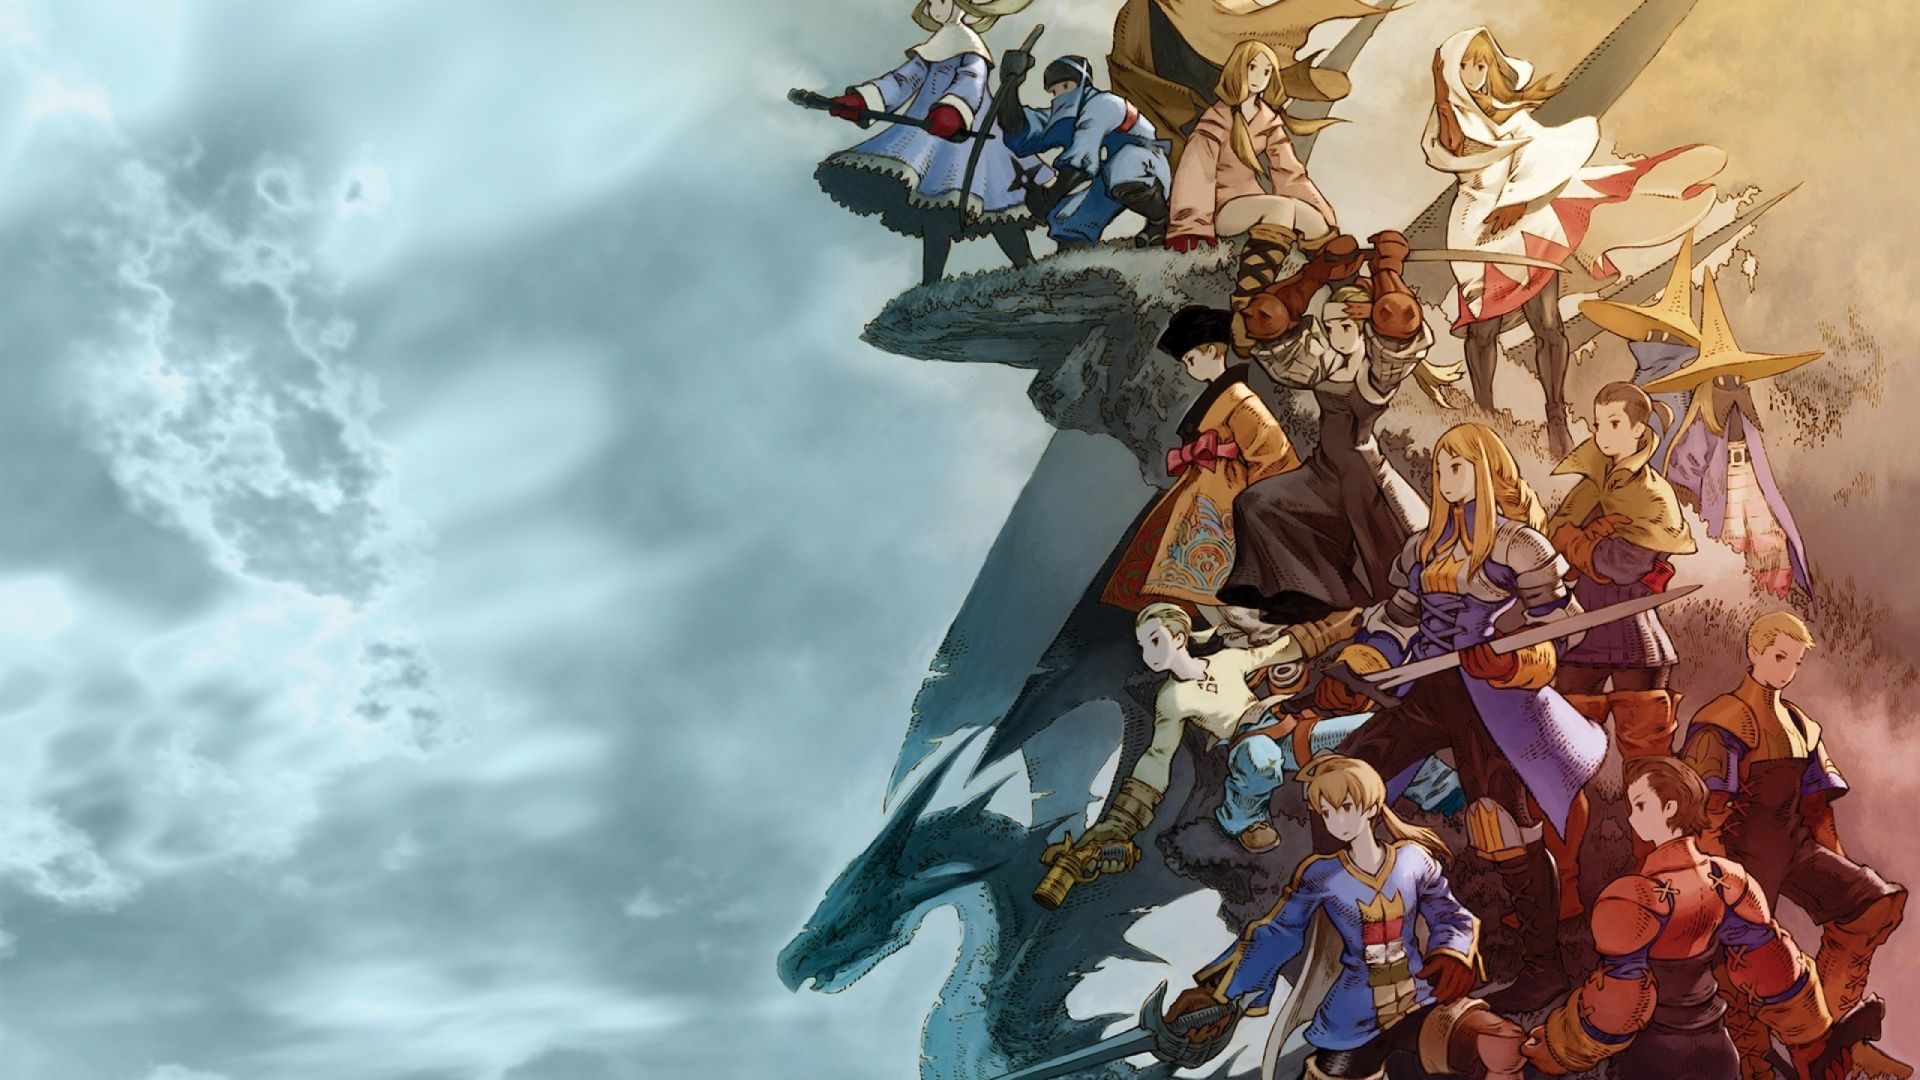 1920x1080 Final Fantasy Tactics Final Fantasy Wallpaper Hd Final Fantasy Tactics Final Fantasy Xv Wallpapers